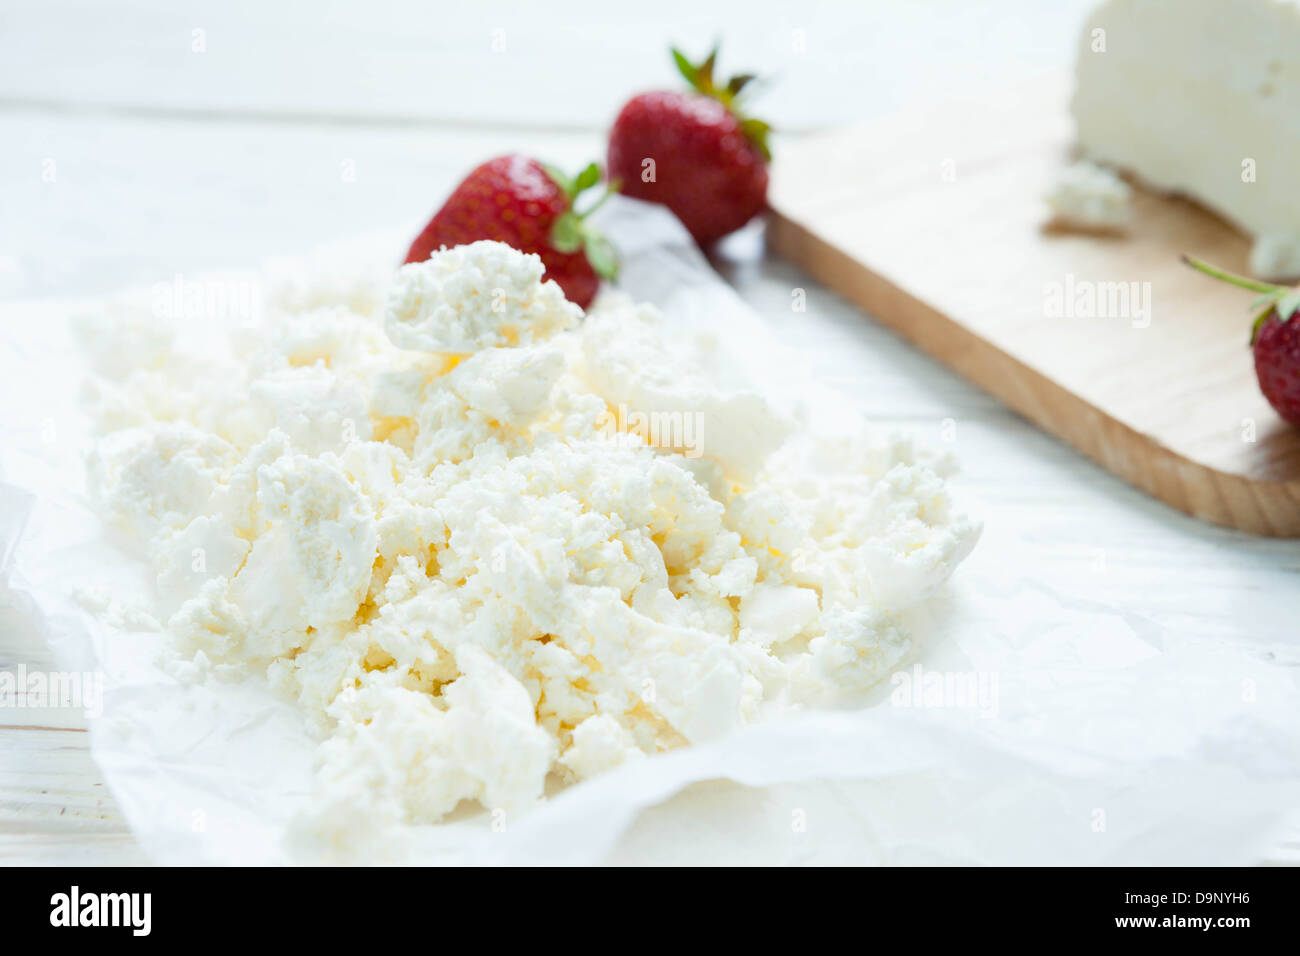 fresh homemade cottage cheese, dairy product, food - Stock Image